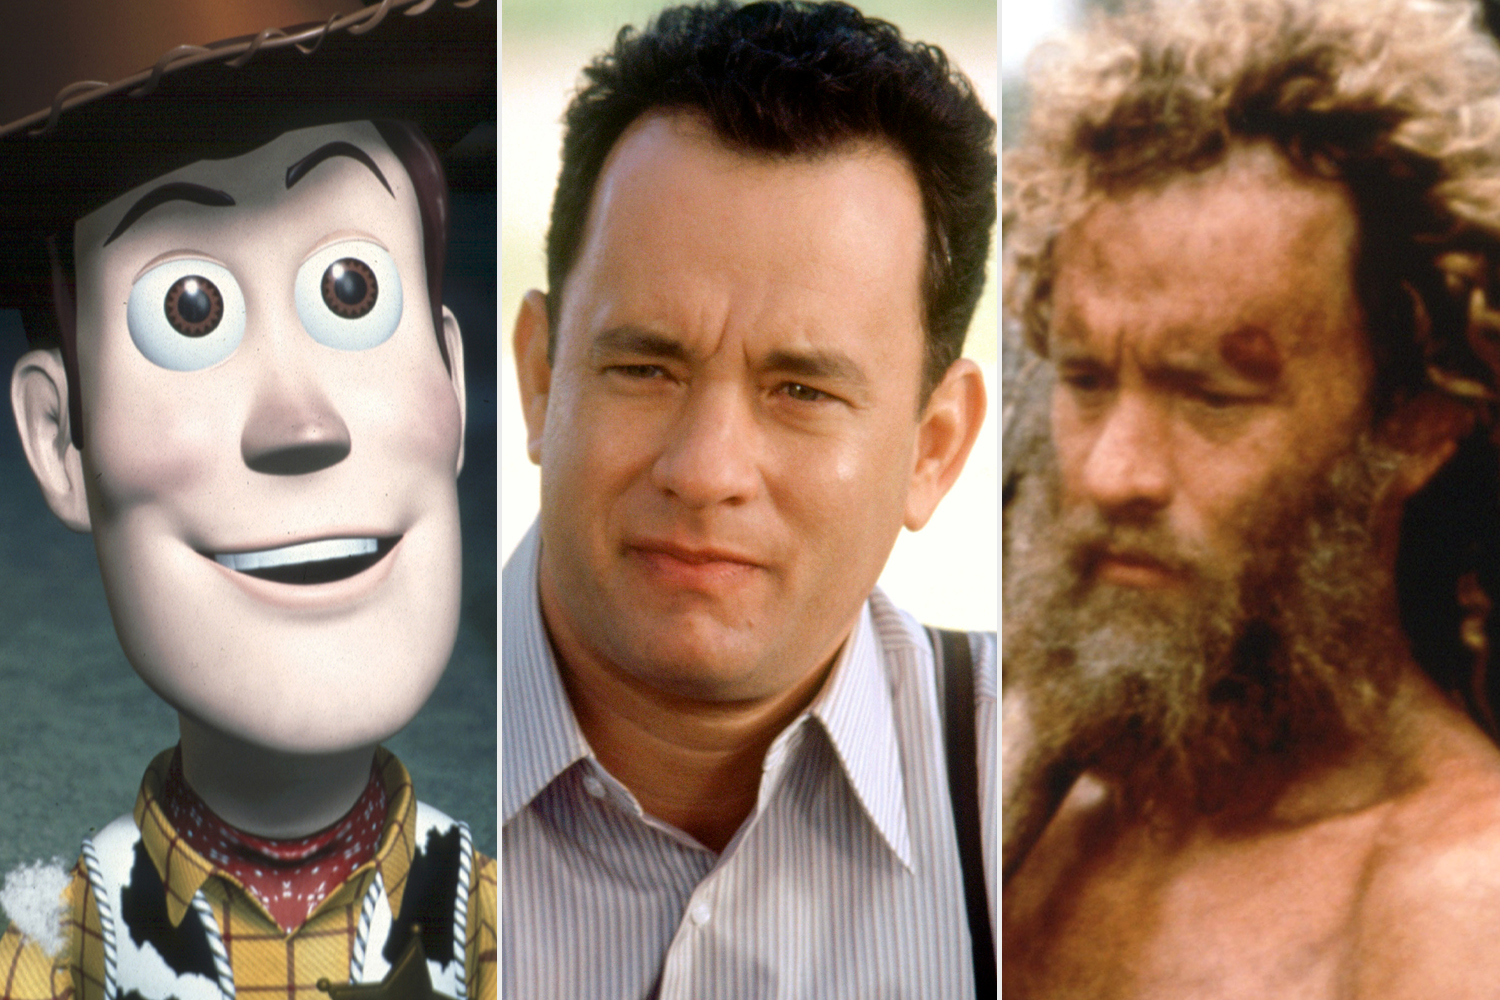 TOY STORY 2; THE GREEN MILE; CAST AWAY